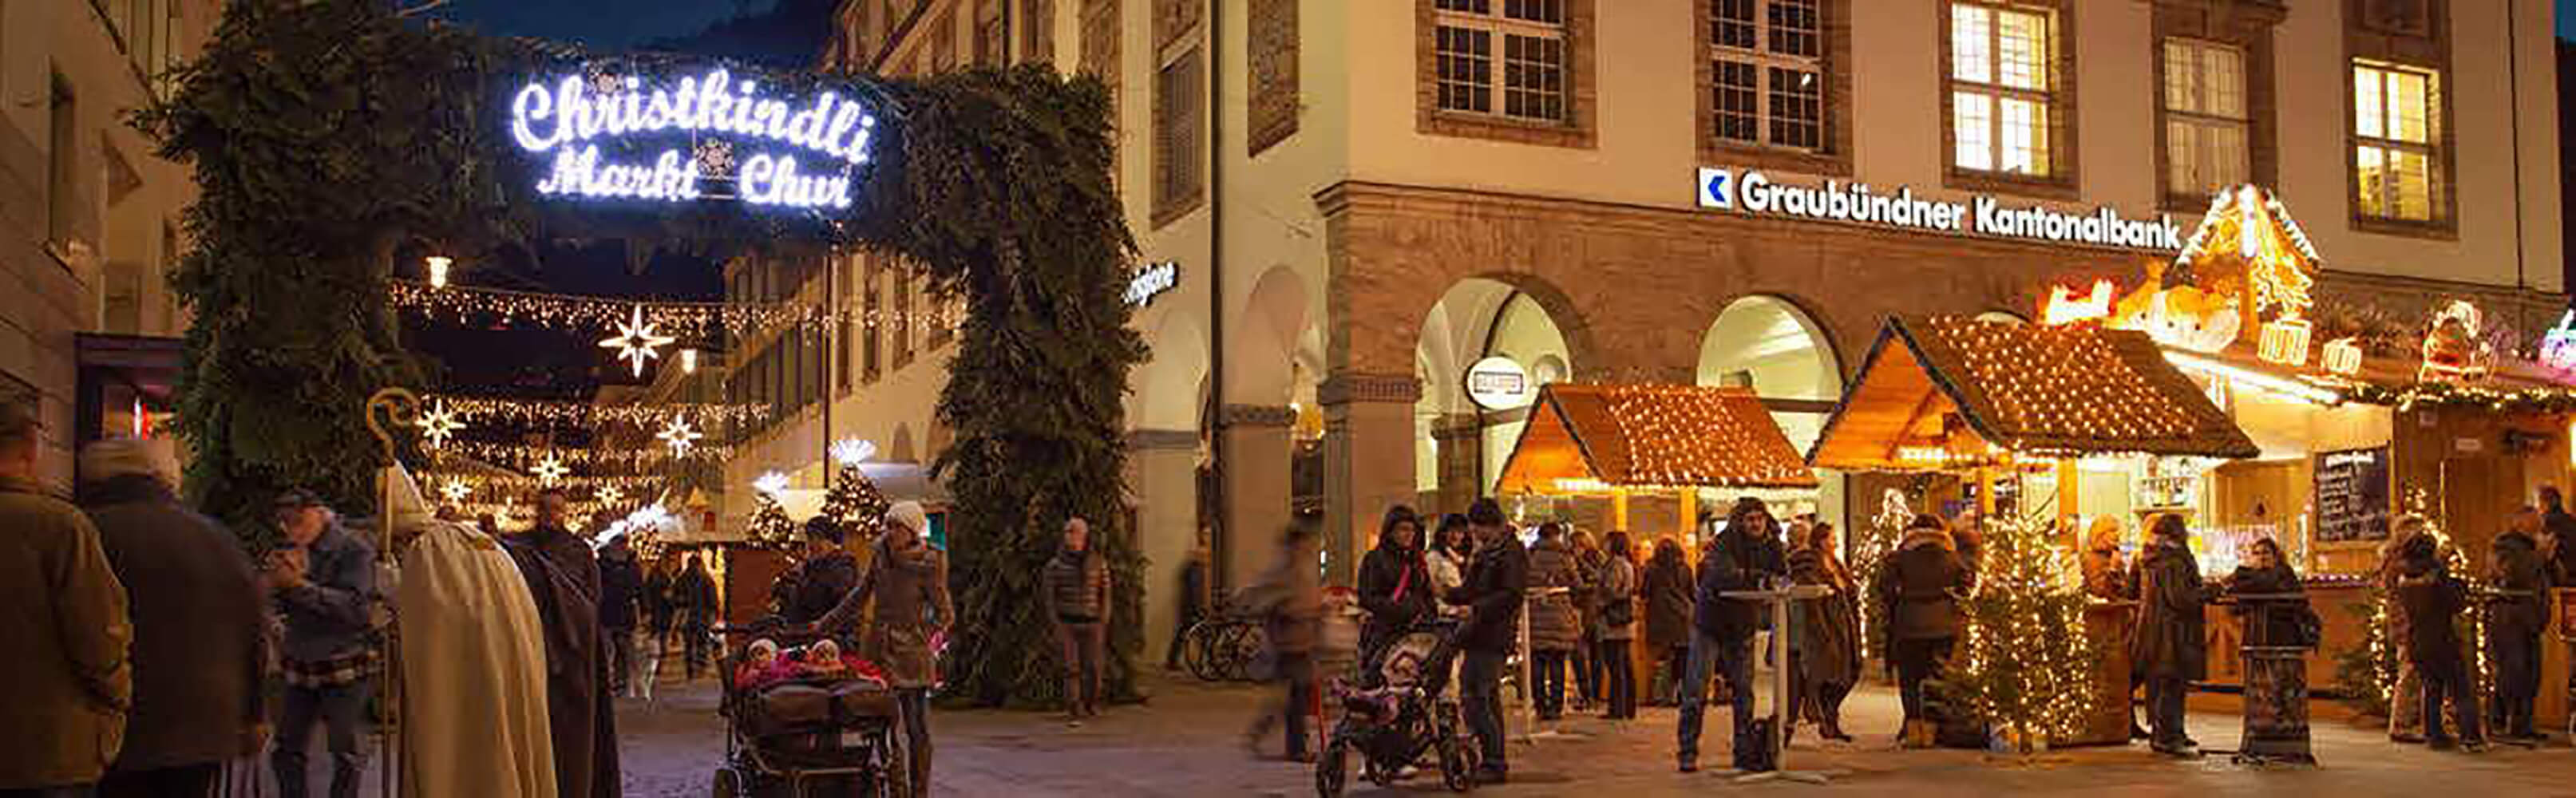 Churer Christkindlimarkt 1